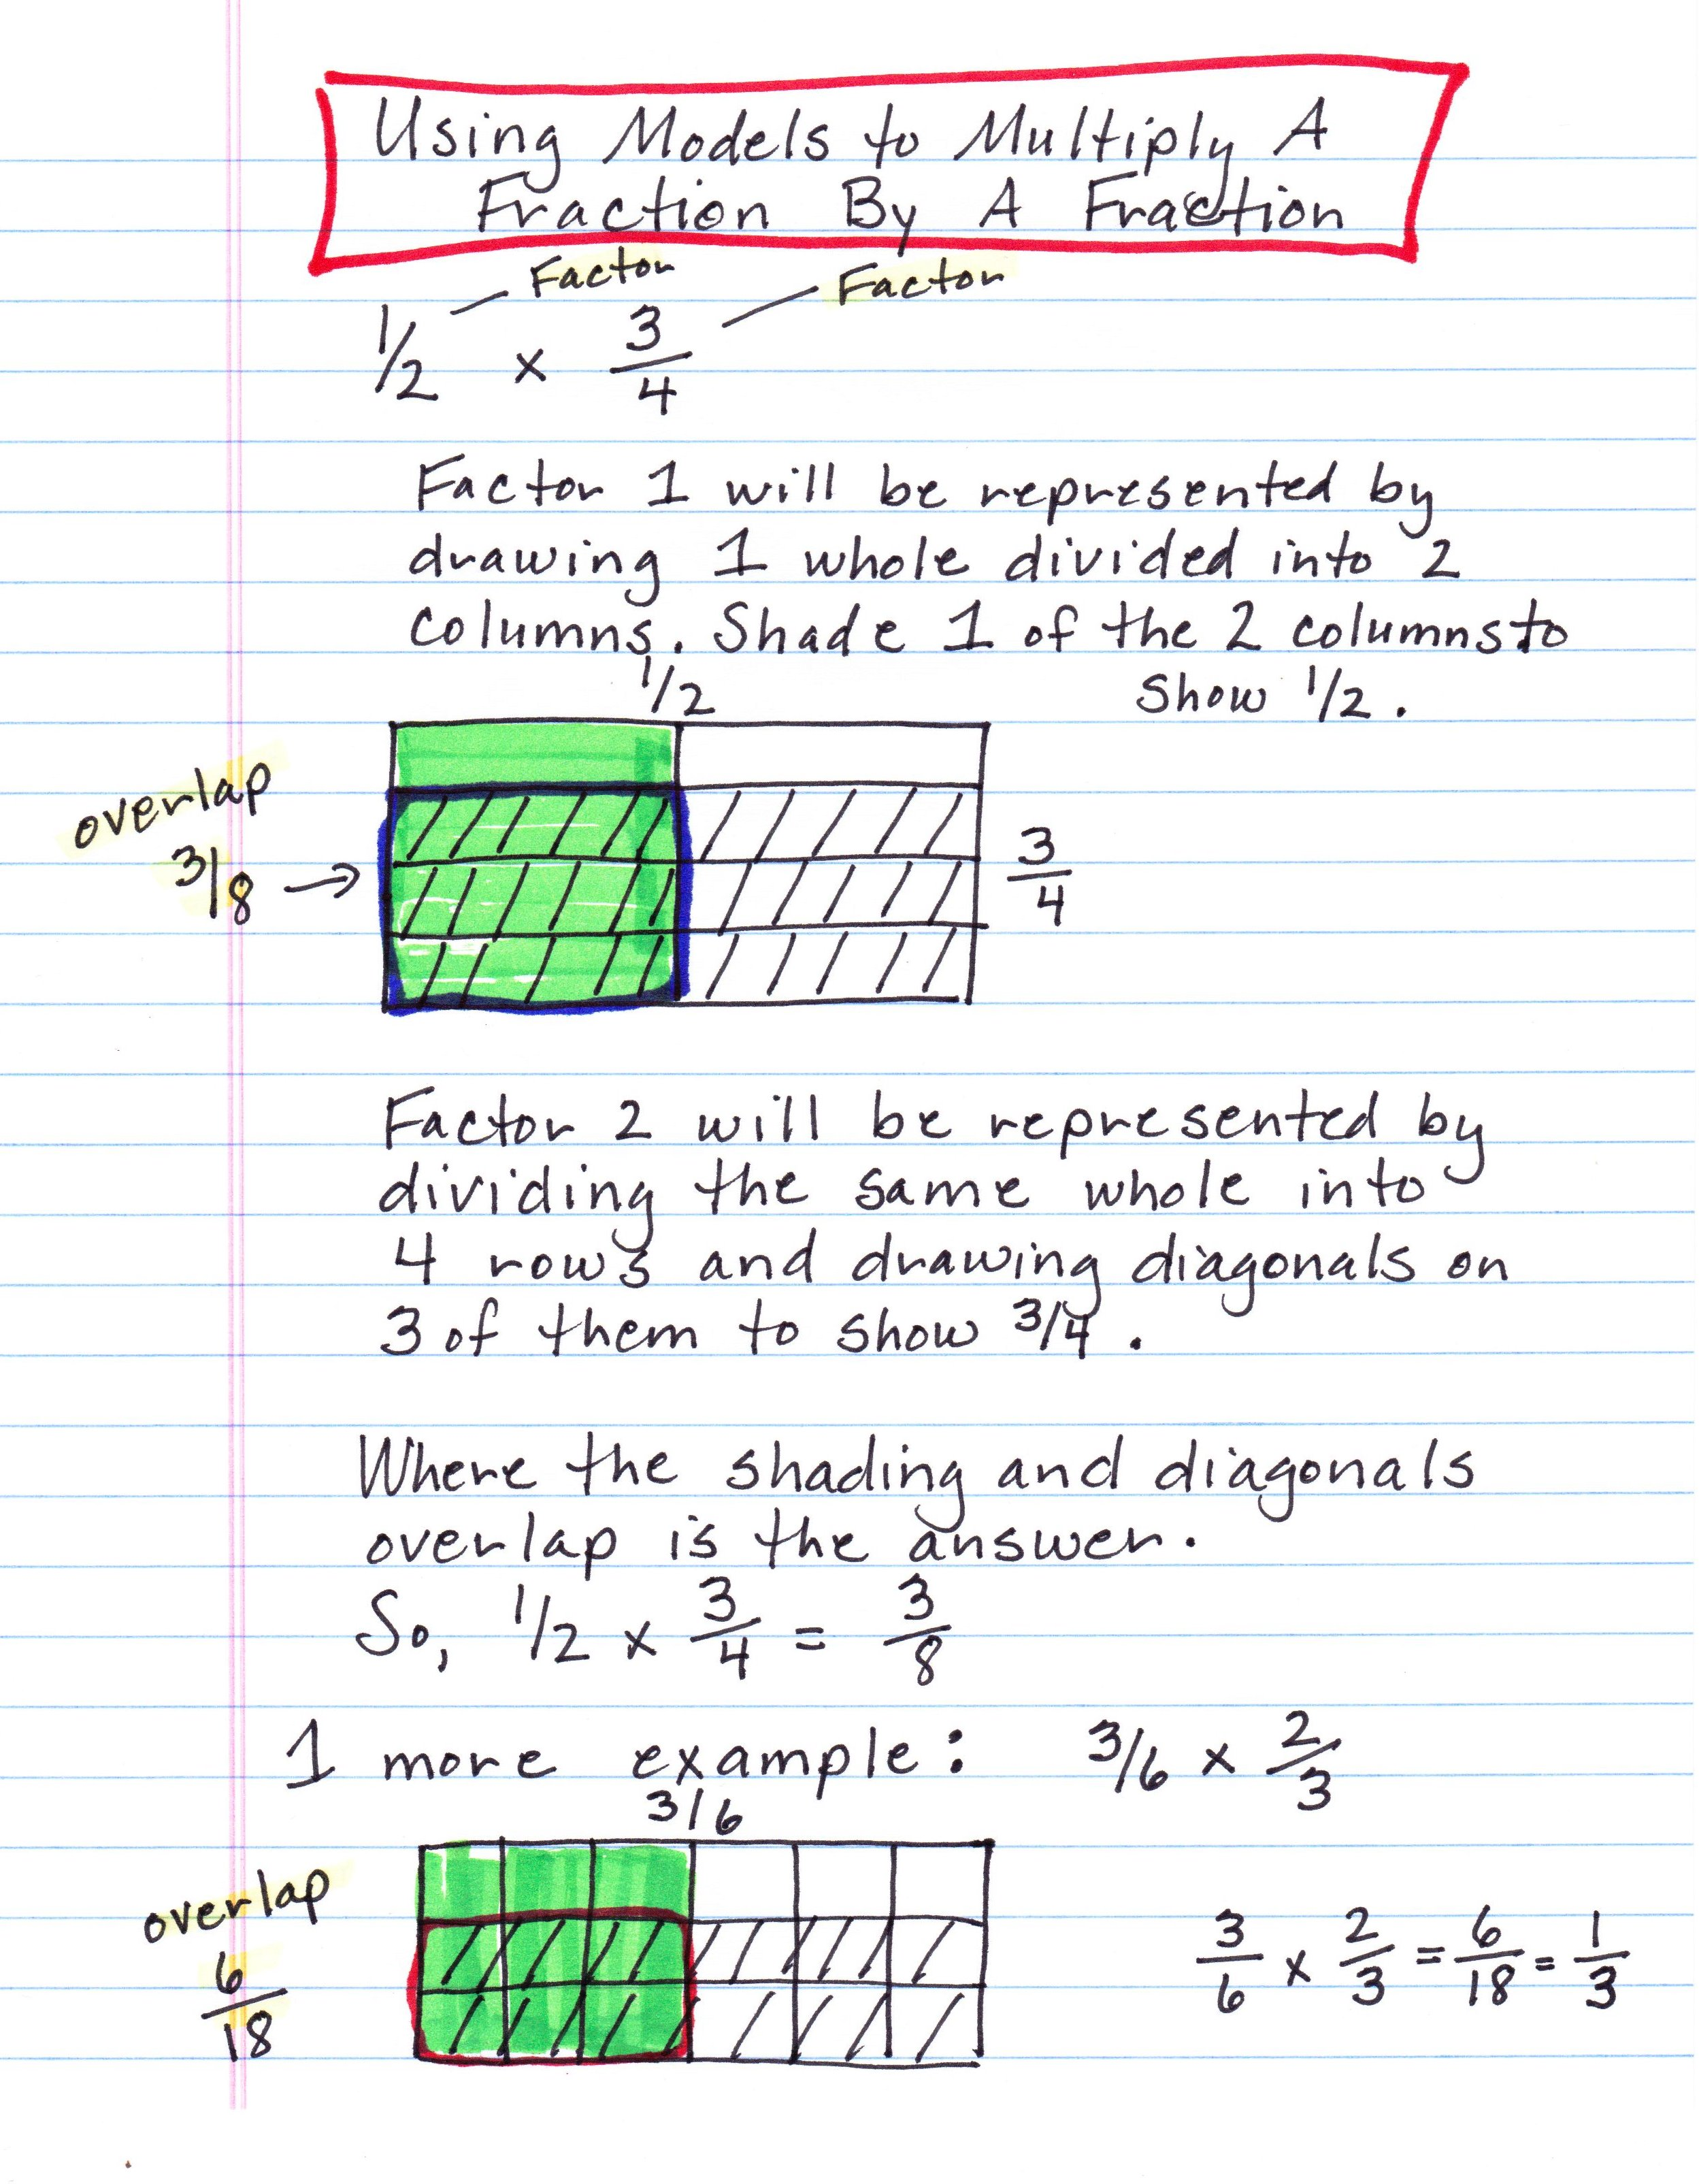 Using Models To Multiply A Fraction By A Fraction